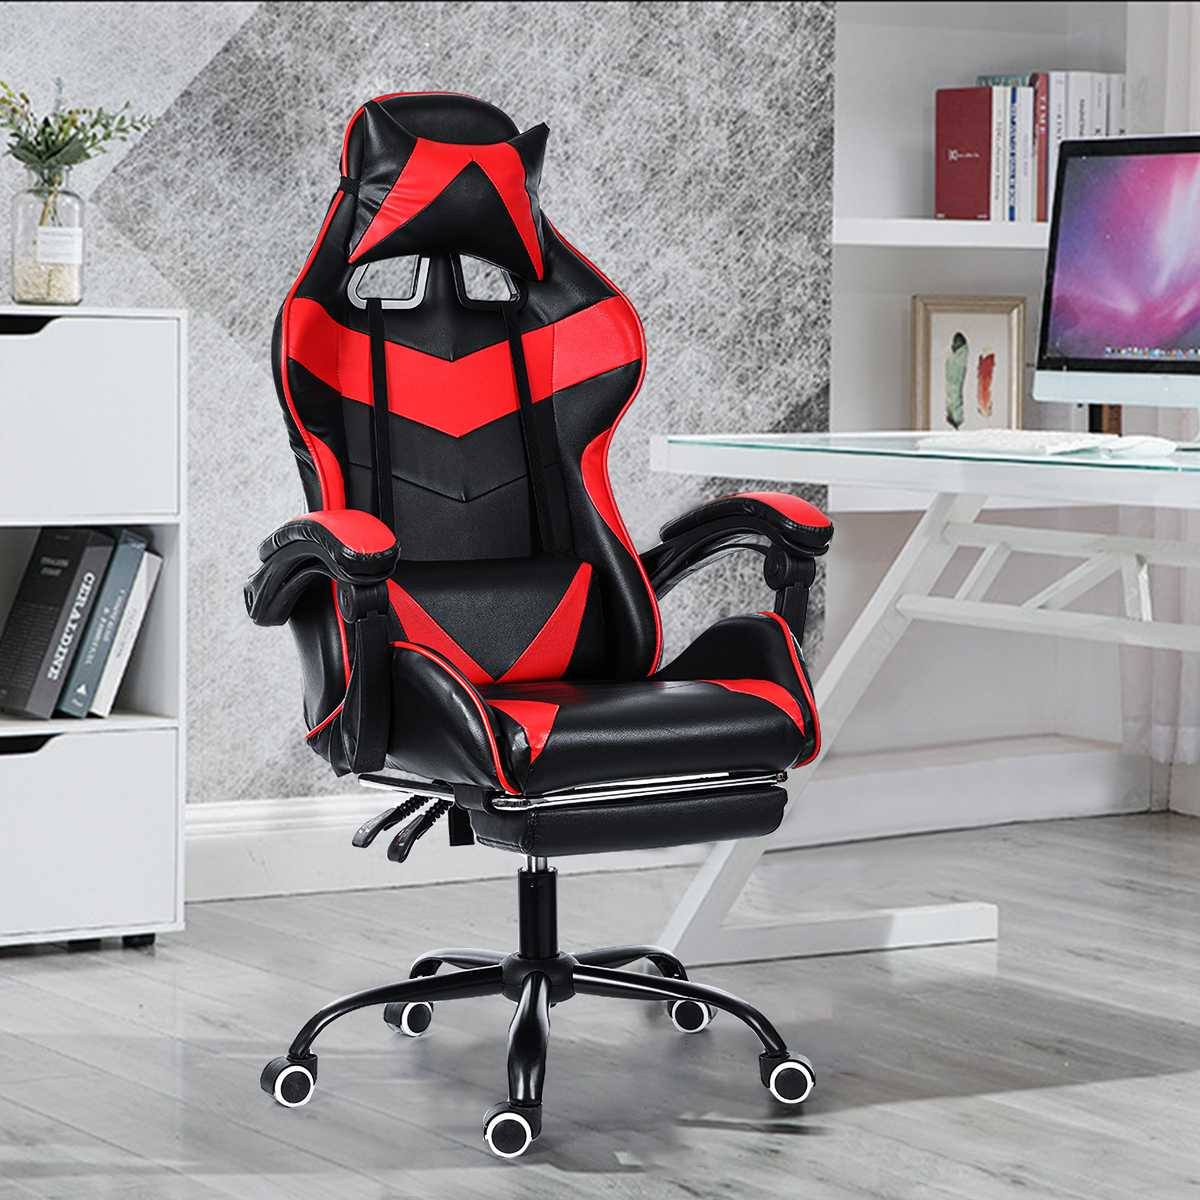 Office Chair Computer Chair Comfortable Chair Gaming Chair Desk Chair Internet Racing Gamer Armchair Silla Game Office Furniture